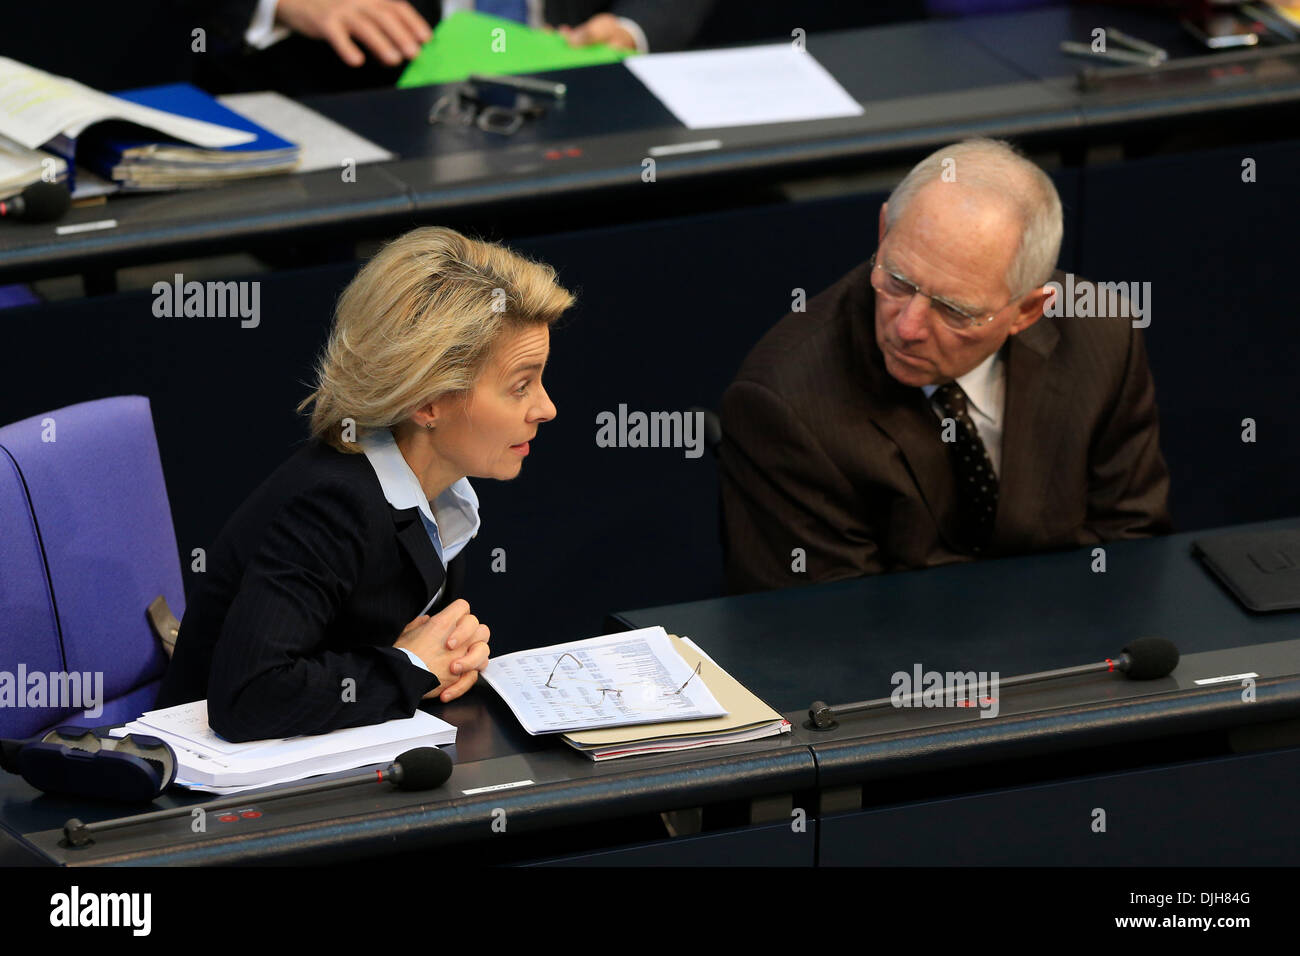 Berlin, Germany. November 28th, 2013. 3. Plenary session (Militar Mission in Sudan) with participation of Chancellor Angela Merkel.  Ursula von der Leyen, Labor minister and Wolfgang Schaeuble (CDU), German Finance Minister. Credit:  Reynaldo Chaib Paganelli/Alamy Live News - Stock Image